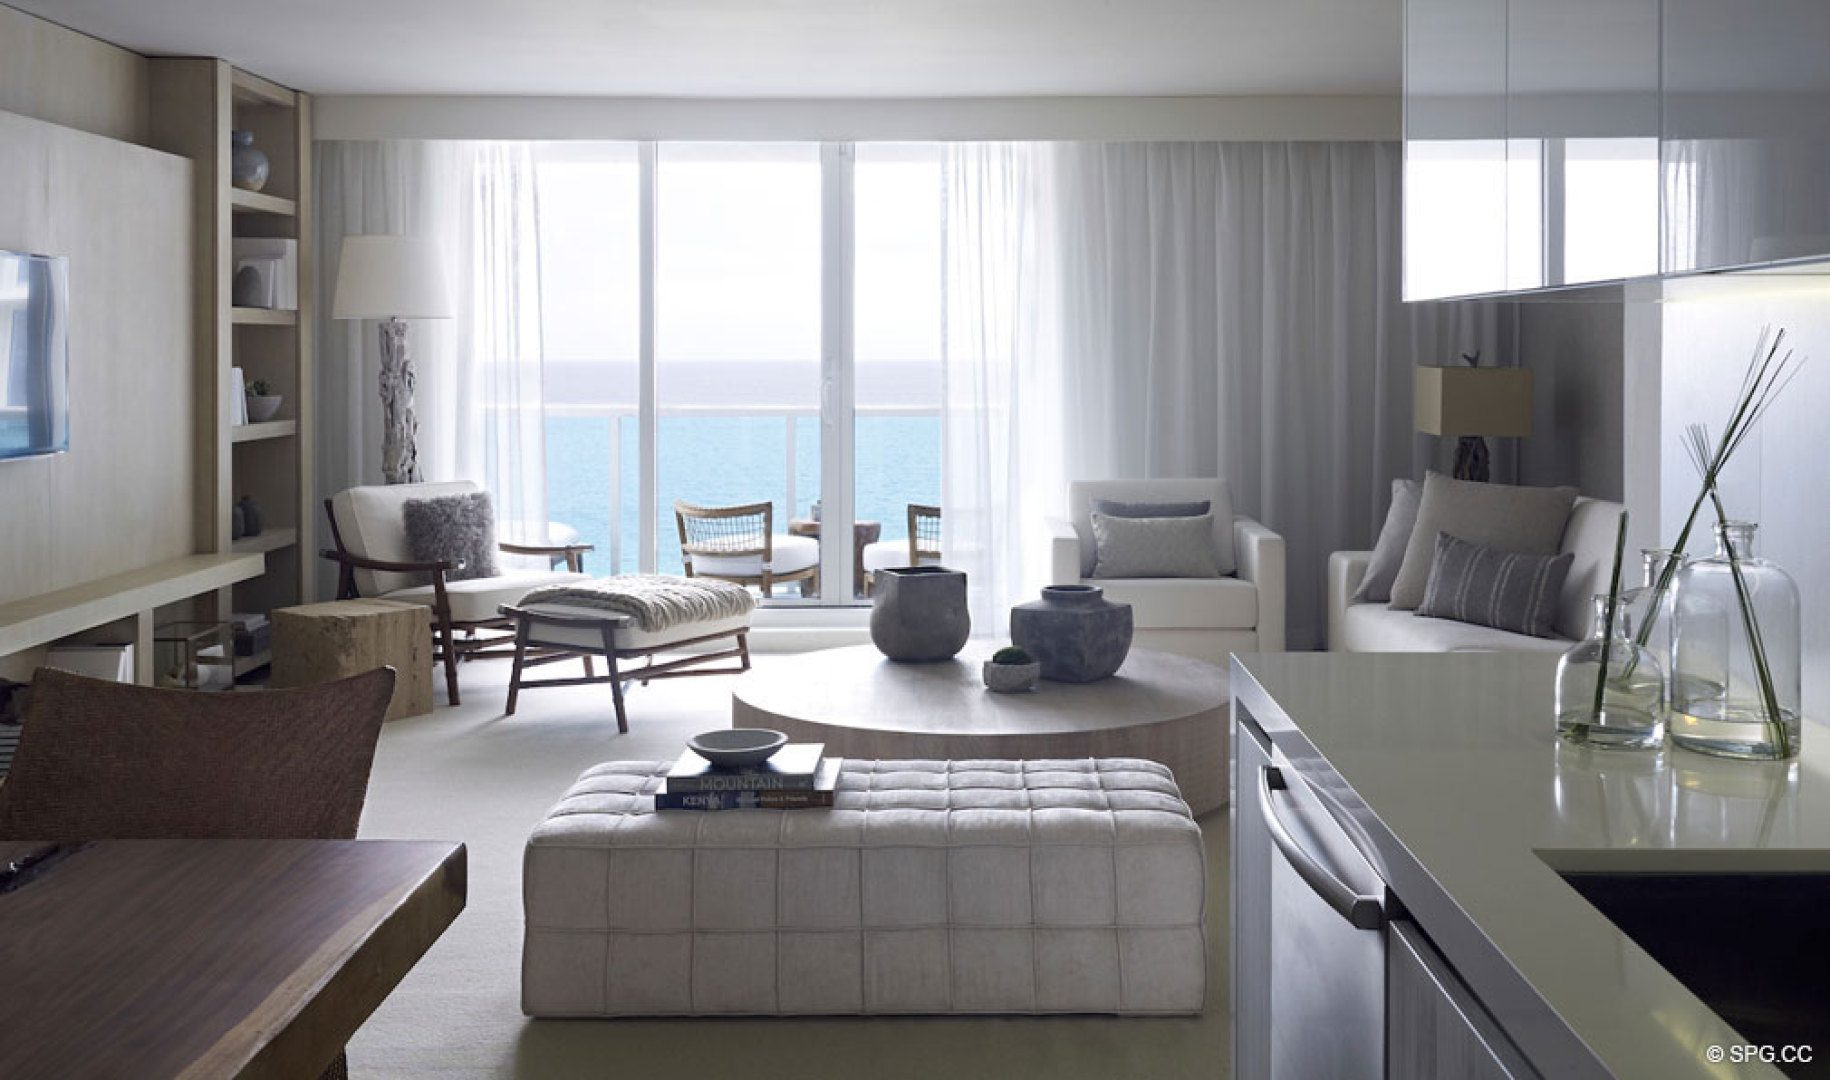 Living Room Design 2 at 1 Hotel & Homes South Beach, Luxury Oceanfront Condominiums Located at 2399 Collins Ave, Miami Beach, FL 33139